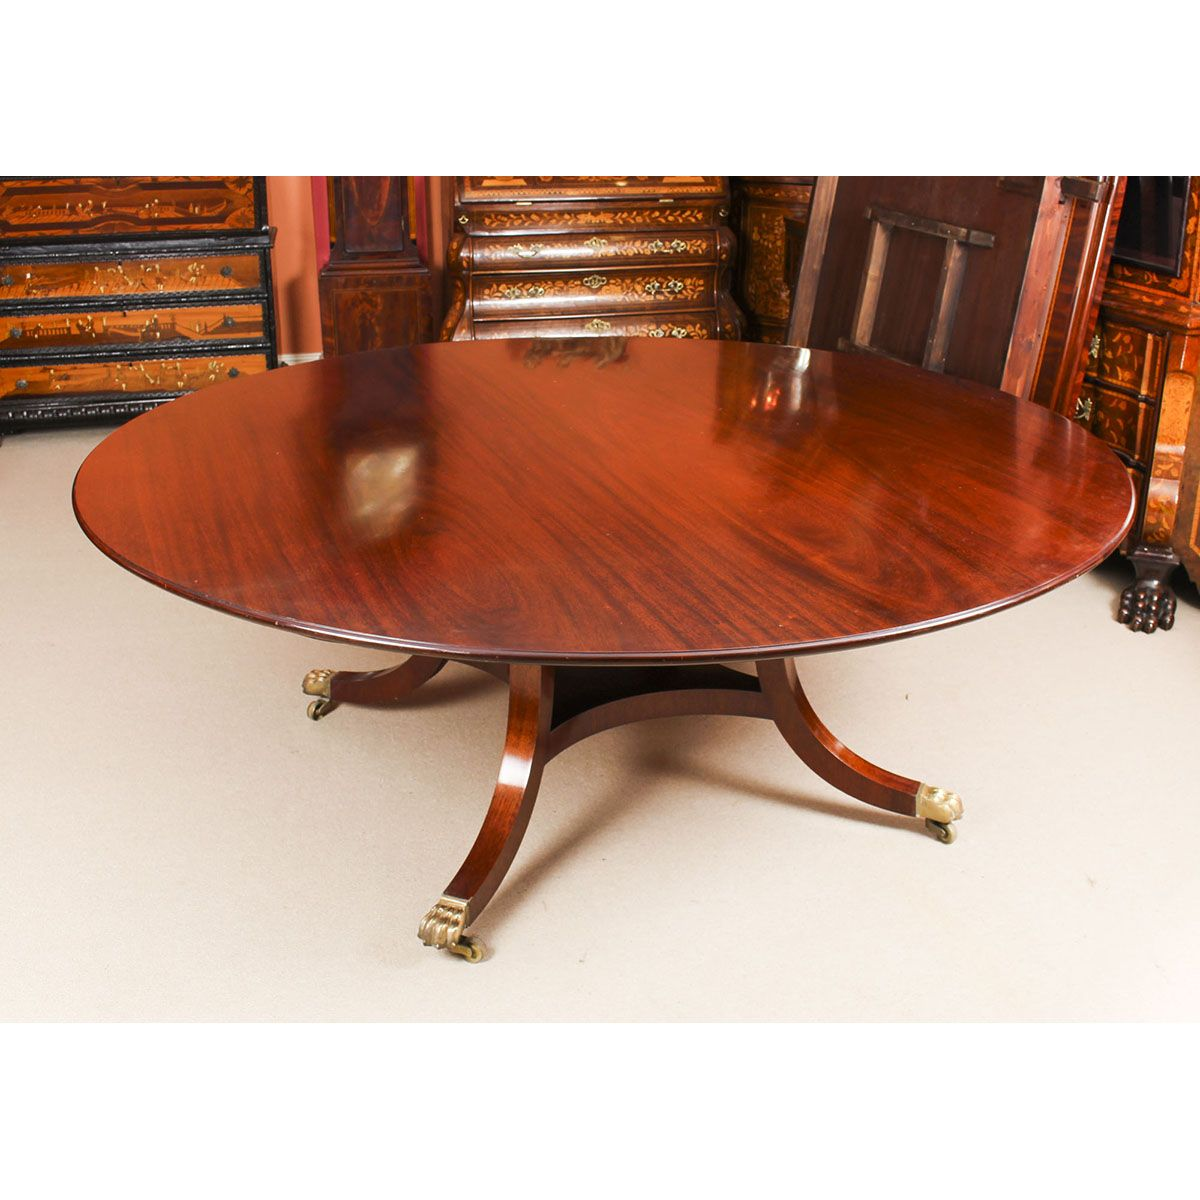 Vintage 6 Ft 6 Round Mahogany Table By William Tillman 20th